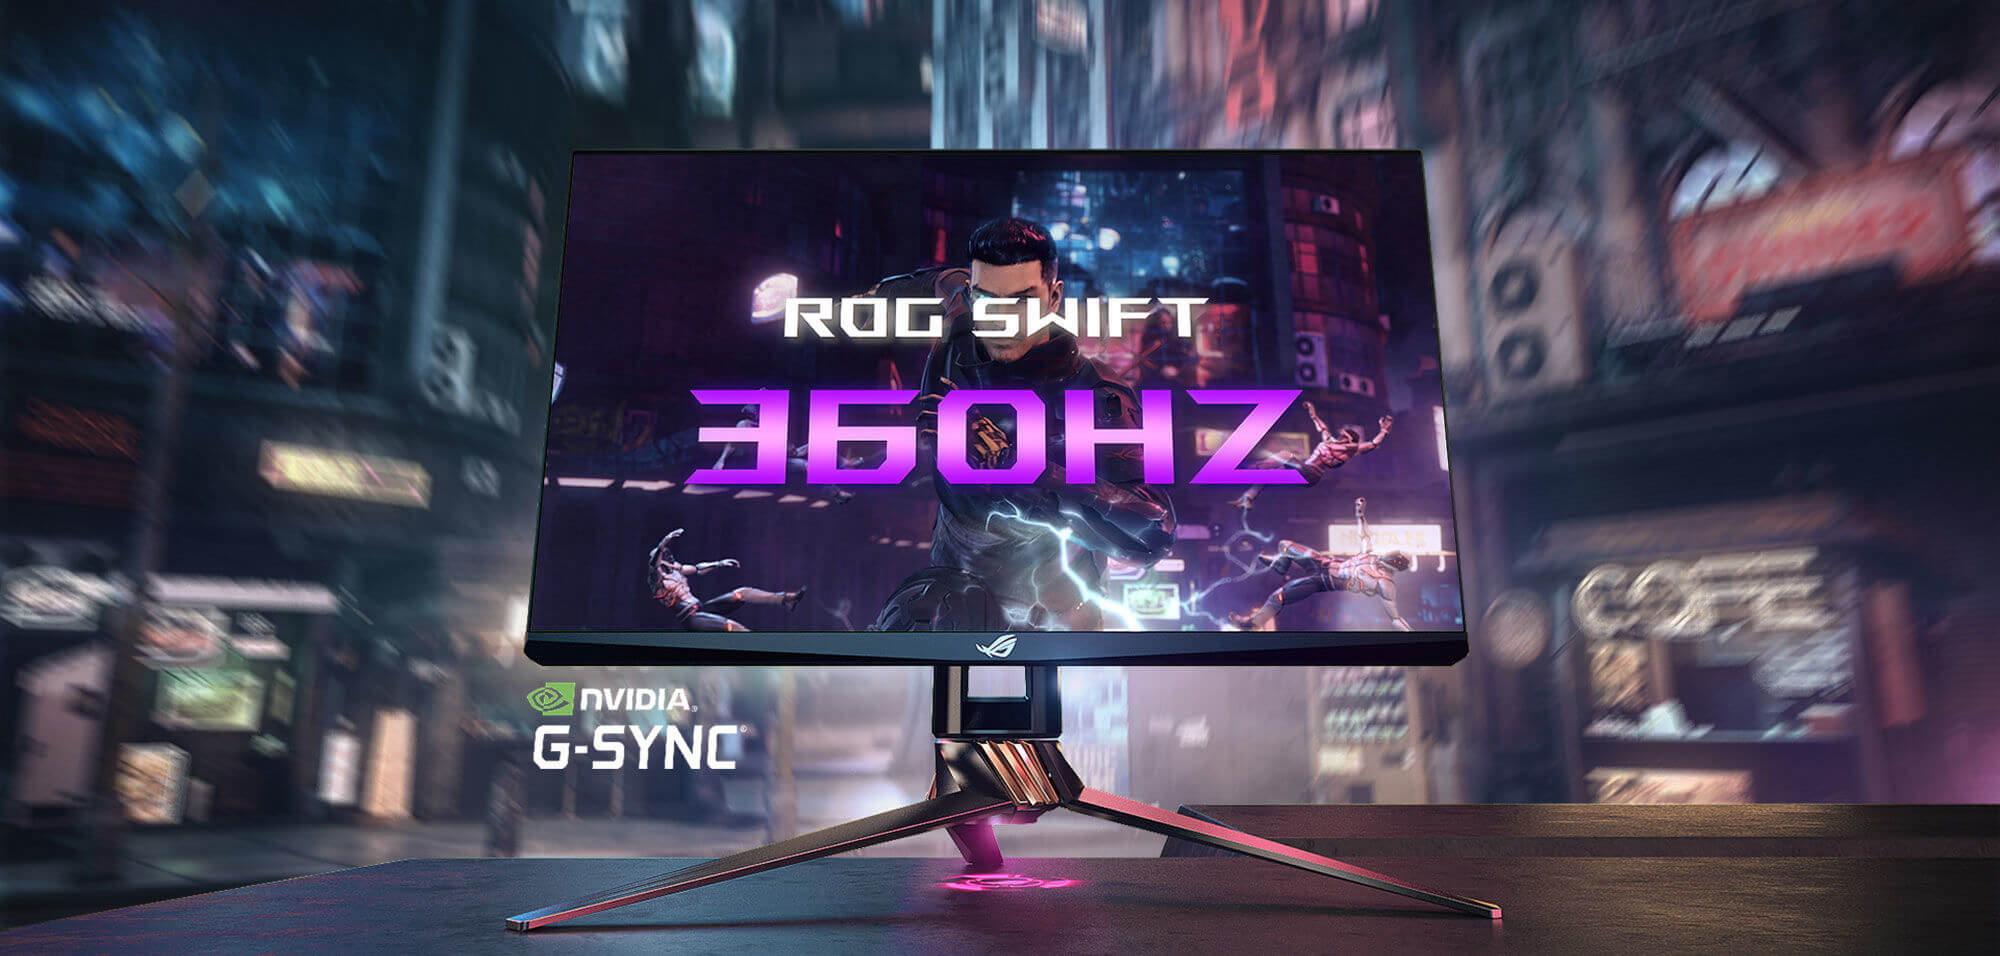 The Asus ROG Swift 360Hz is the world's fastest monitor